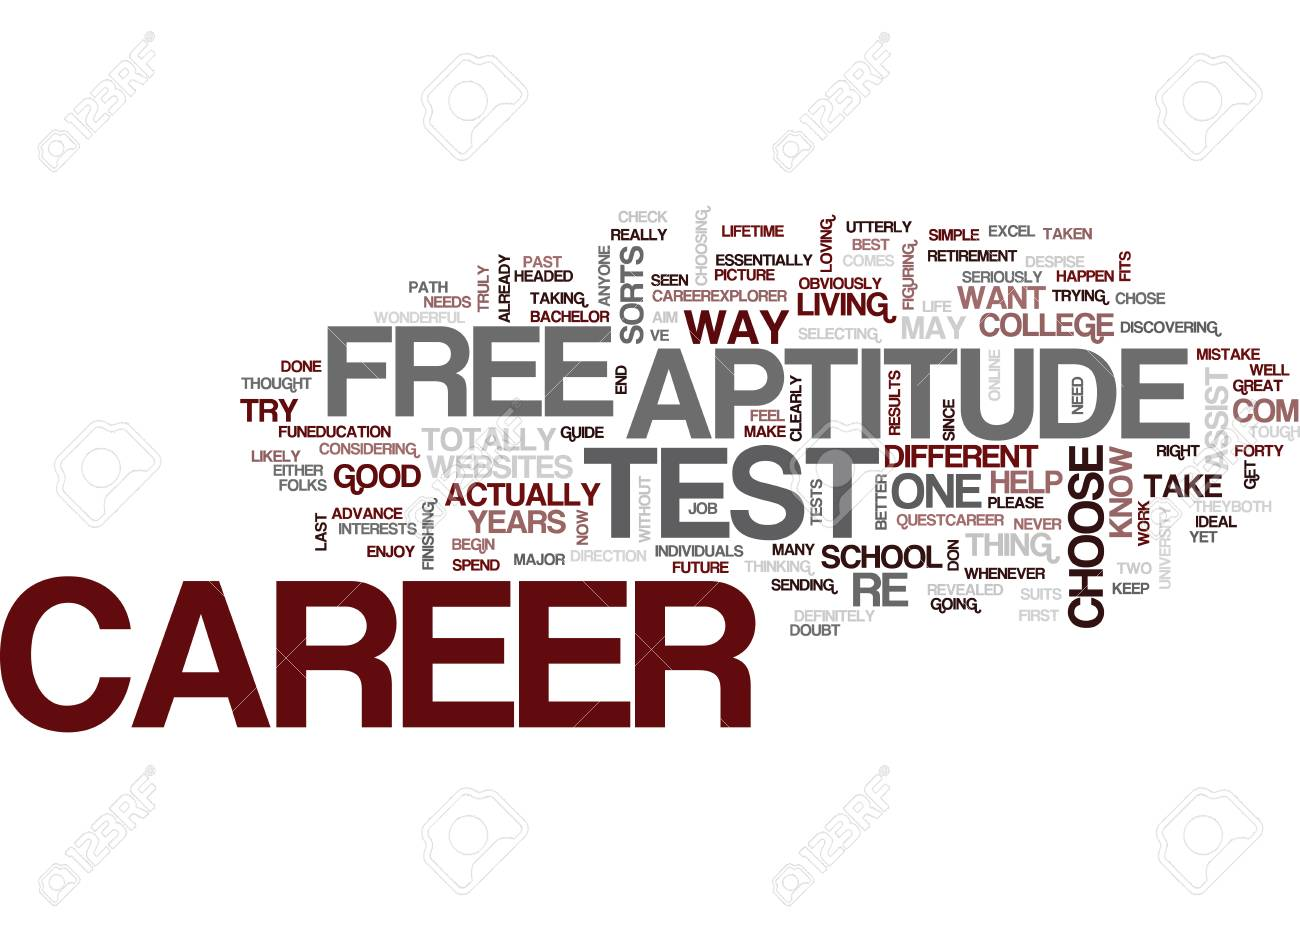 Taking Career Tests - Good Way To Understand Your Career Option